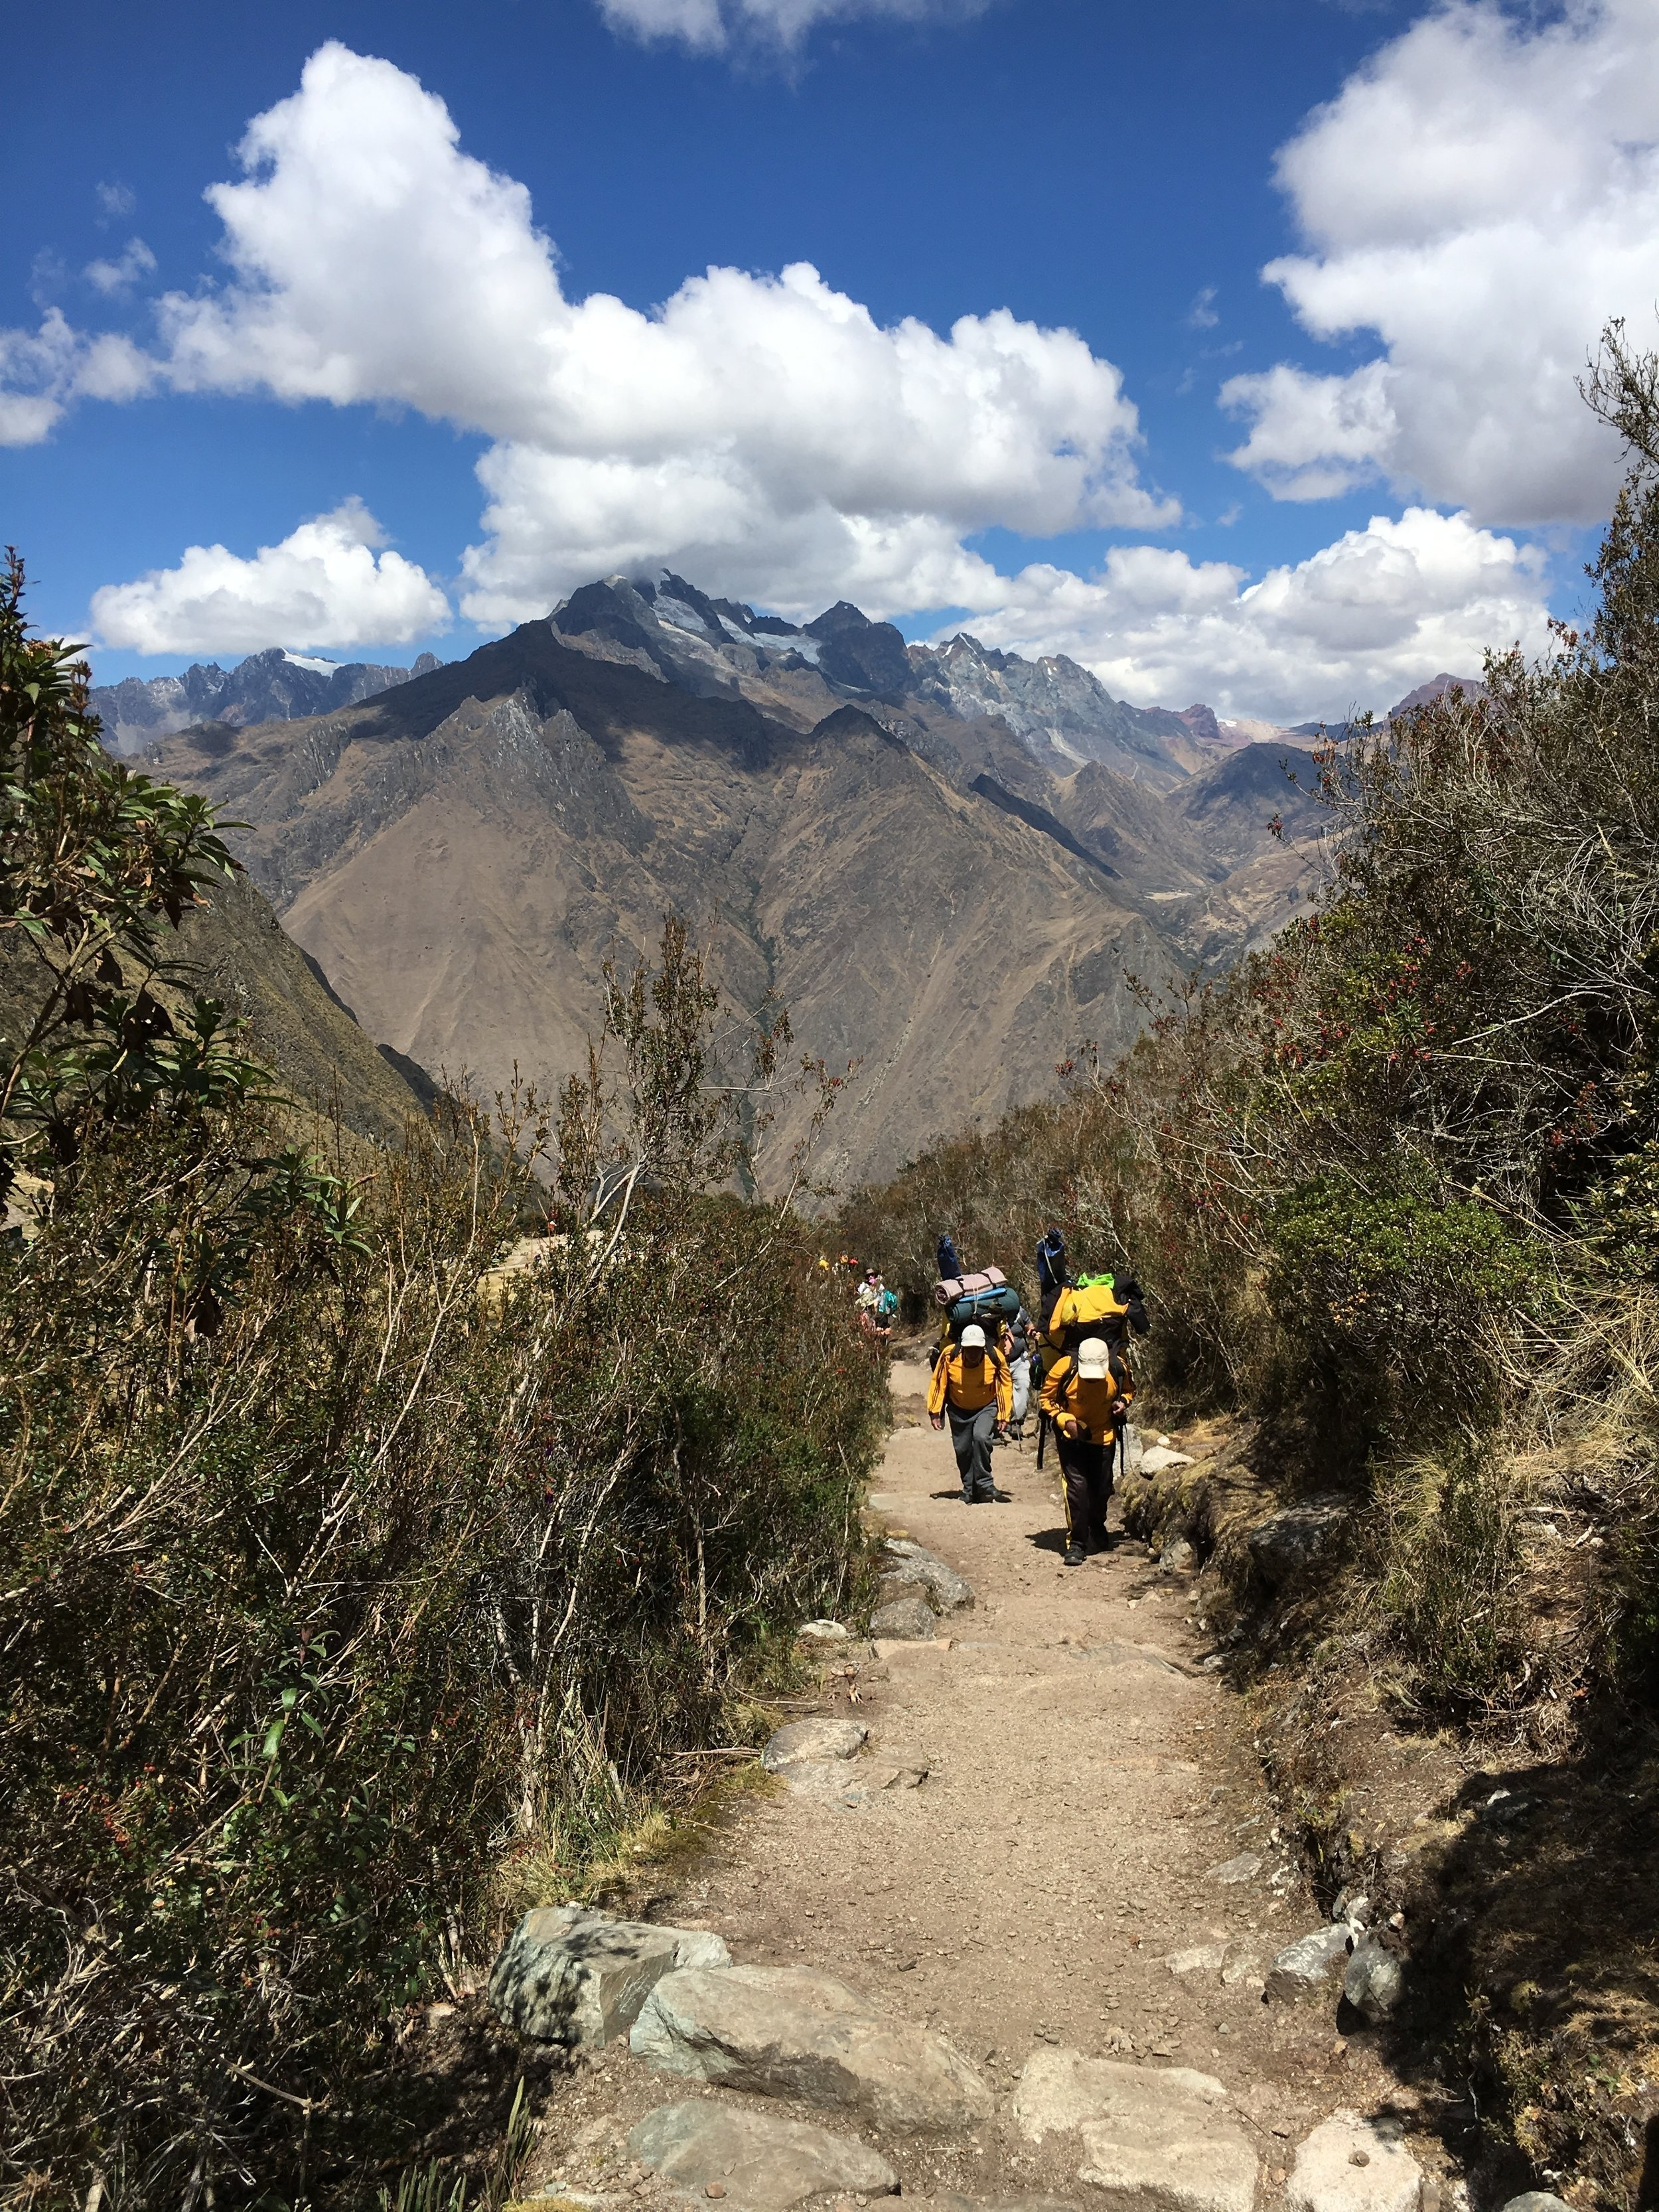 Porters on the Inca Trail. These men race through the mountains while carrying necessities for the campers. I'd die.